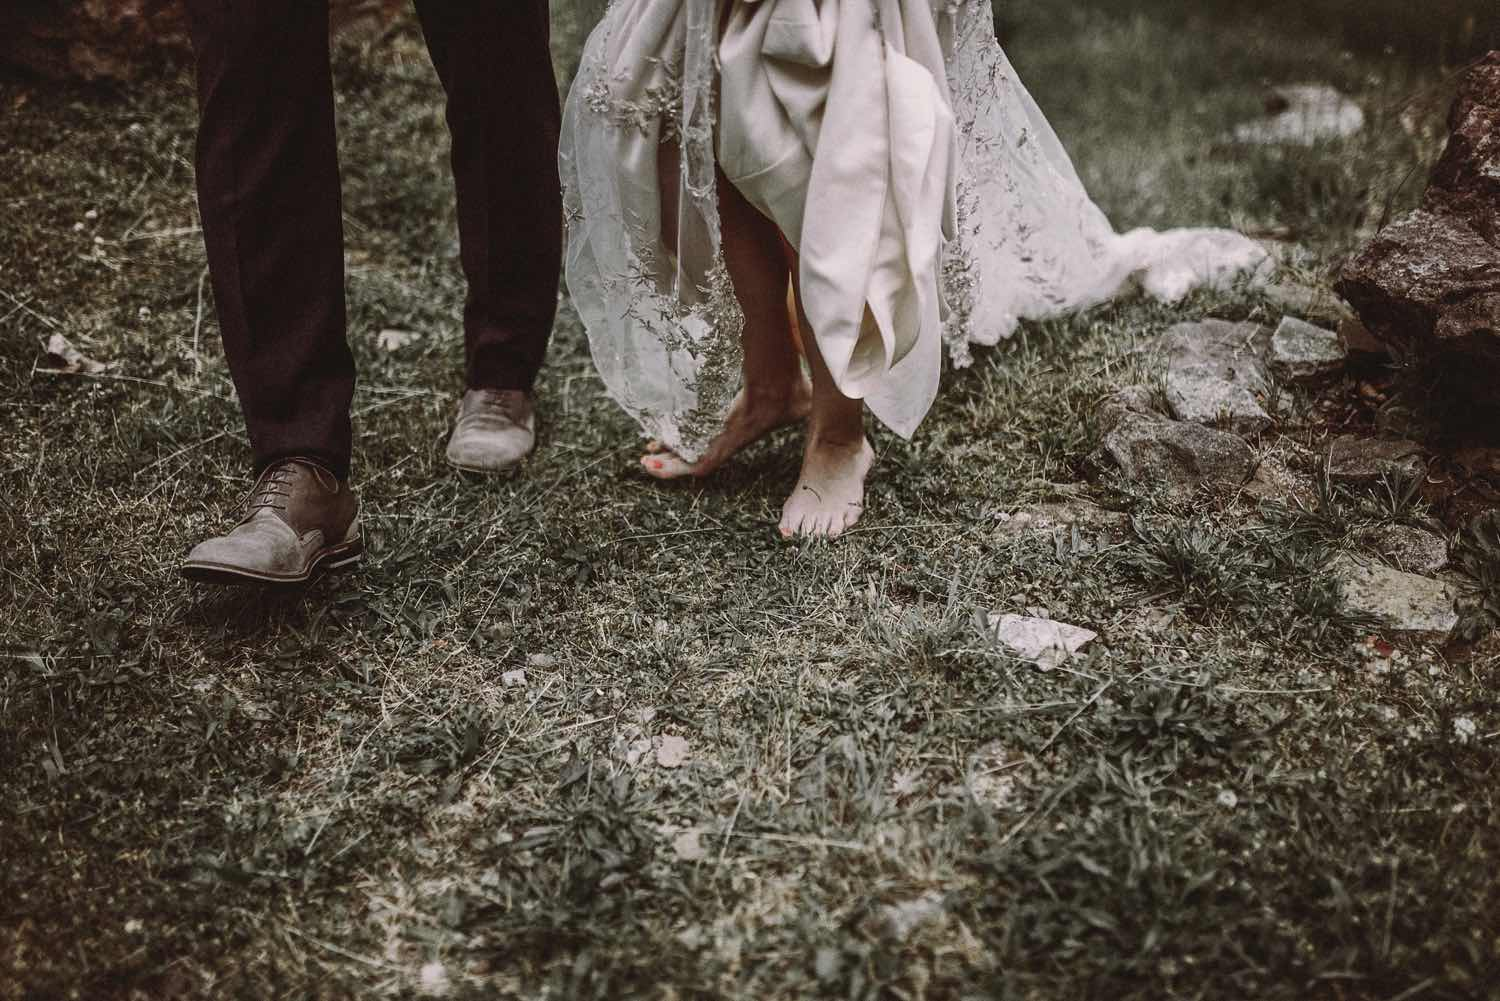 gateway lodge elopement, cook forest elopement, gateway lodge wedding, intimate cook forest elopement